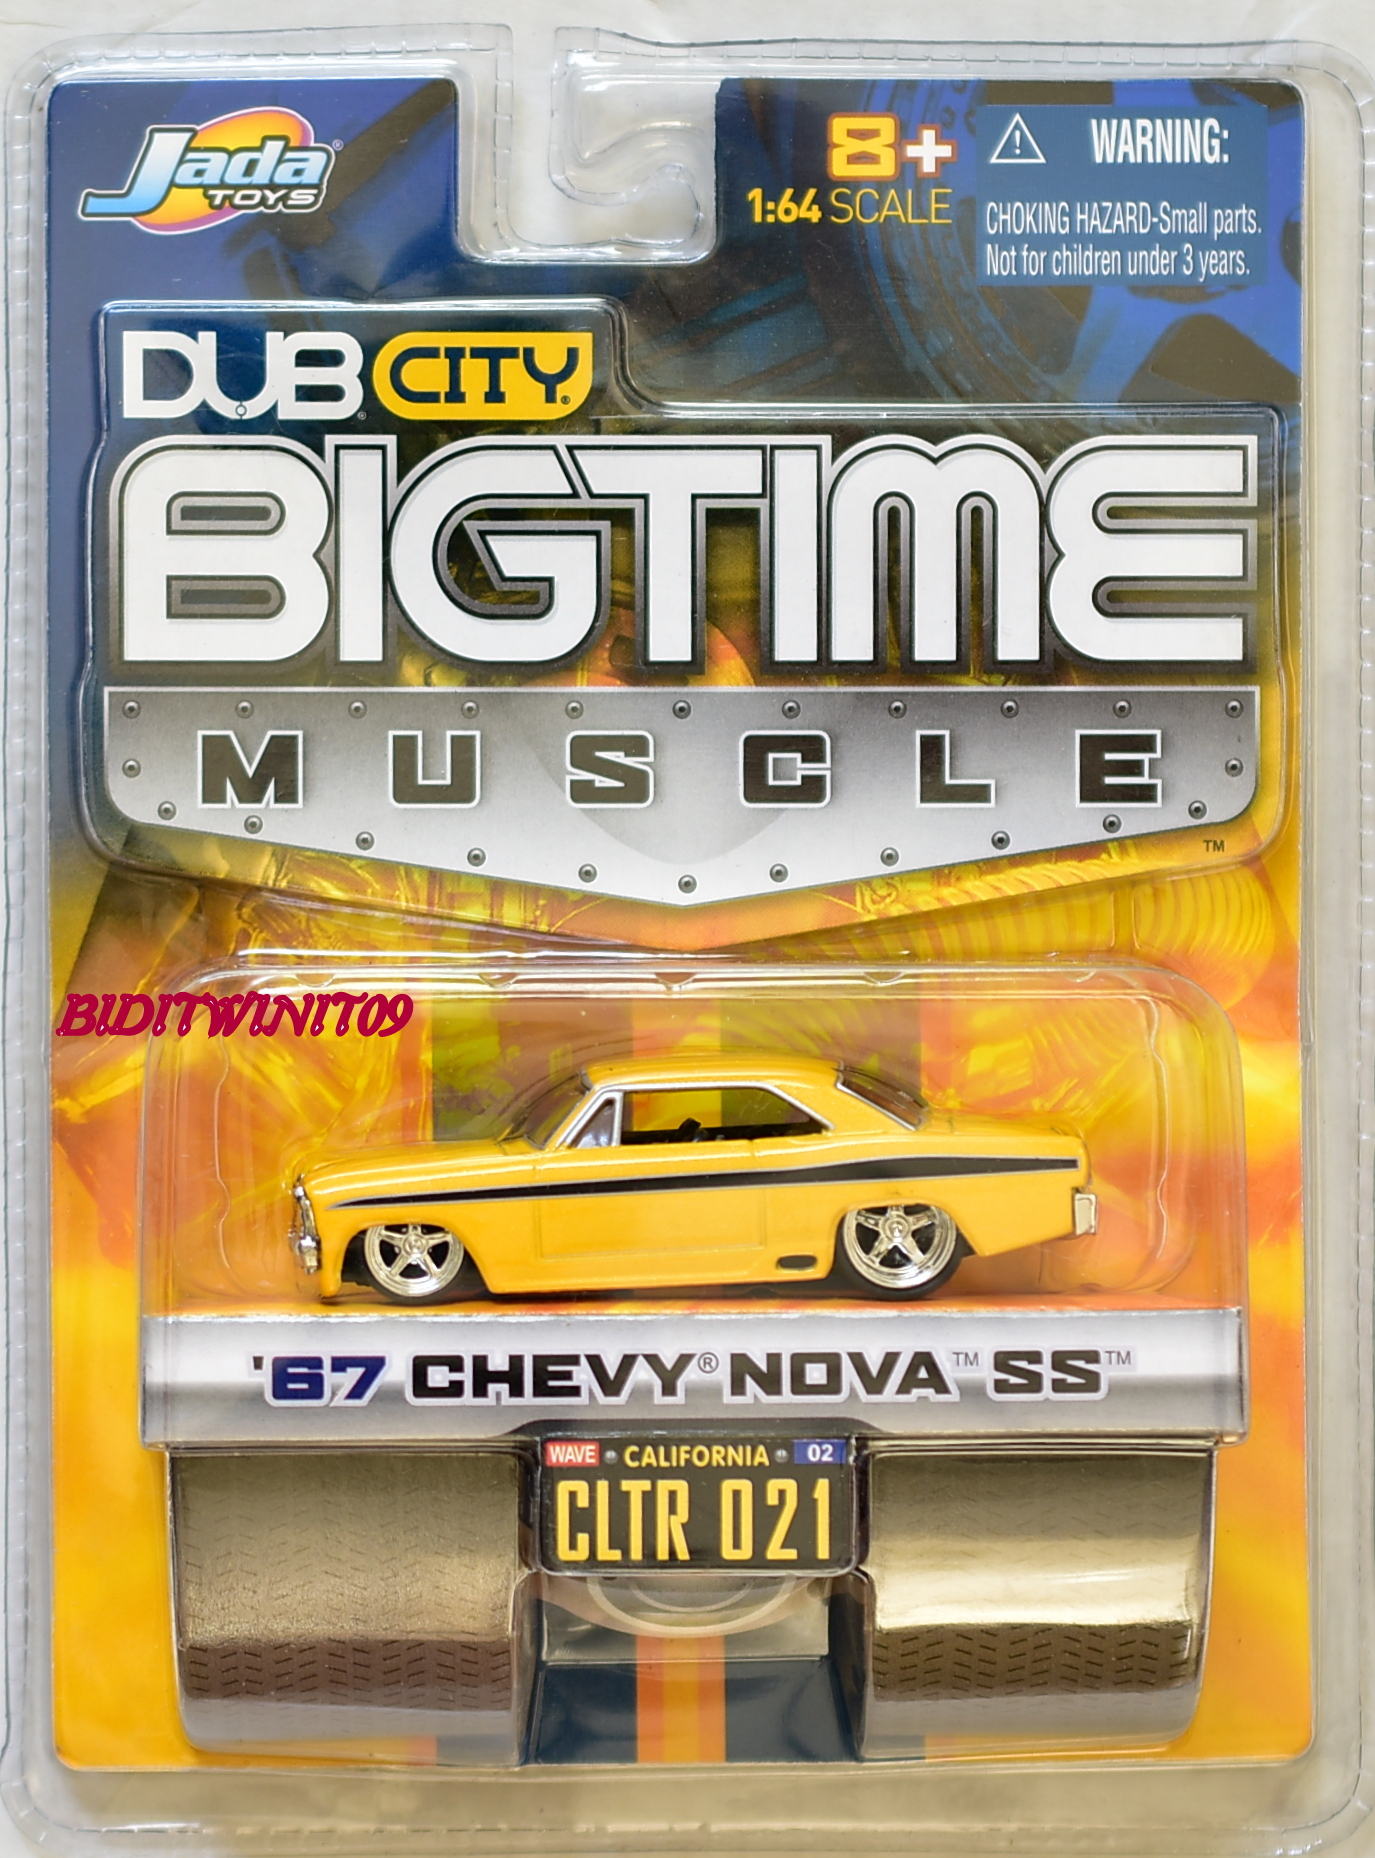 JADA TOYS DUB CITY BIGTIME MUSCLE '67 CHEVY NOVA SS CLTR 021 YELLOW